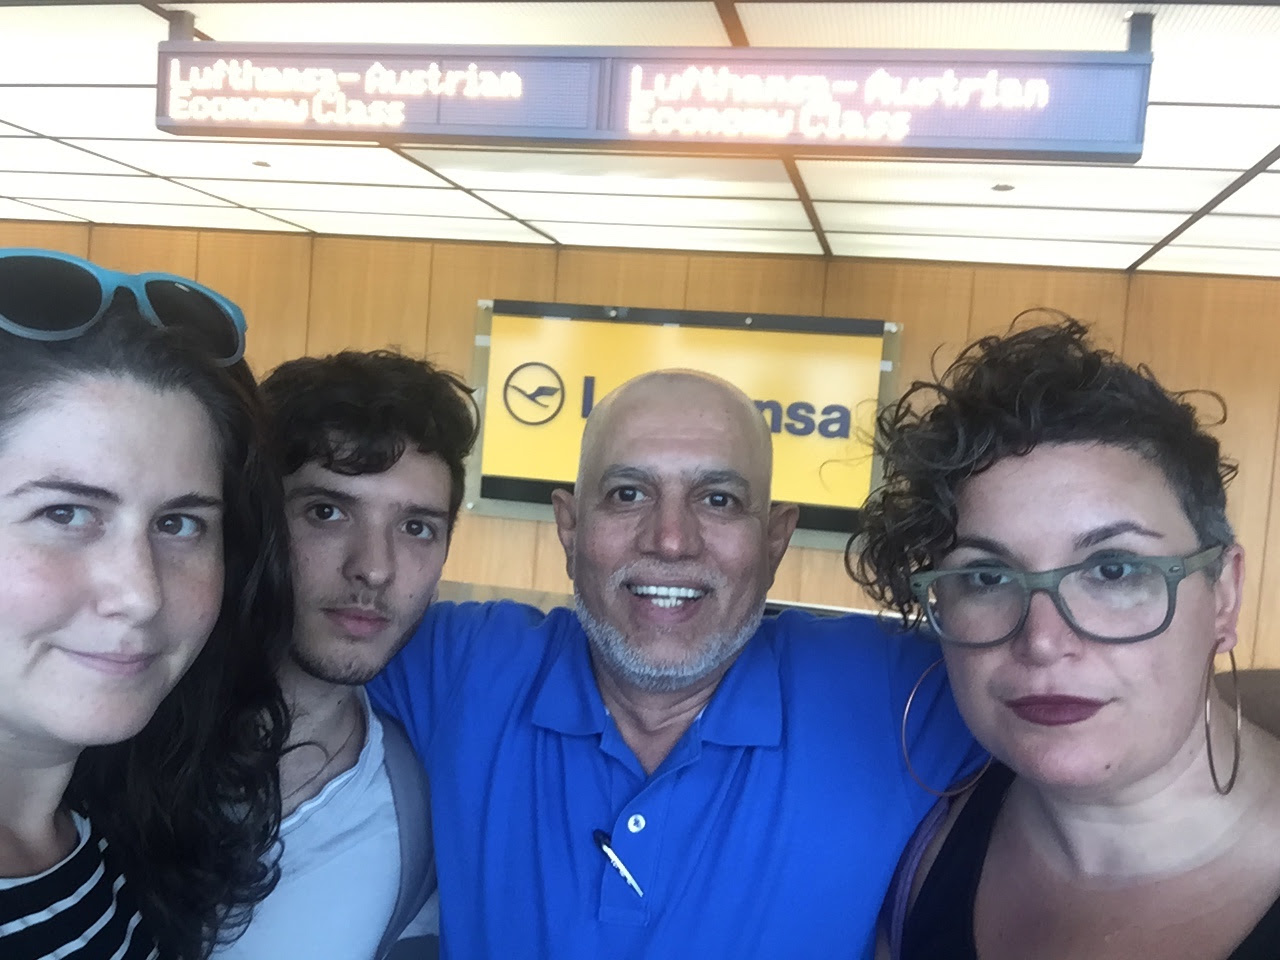 I'm a Jewish American Who Wanted to Visit Israel. I Got as Far as the Airport.